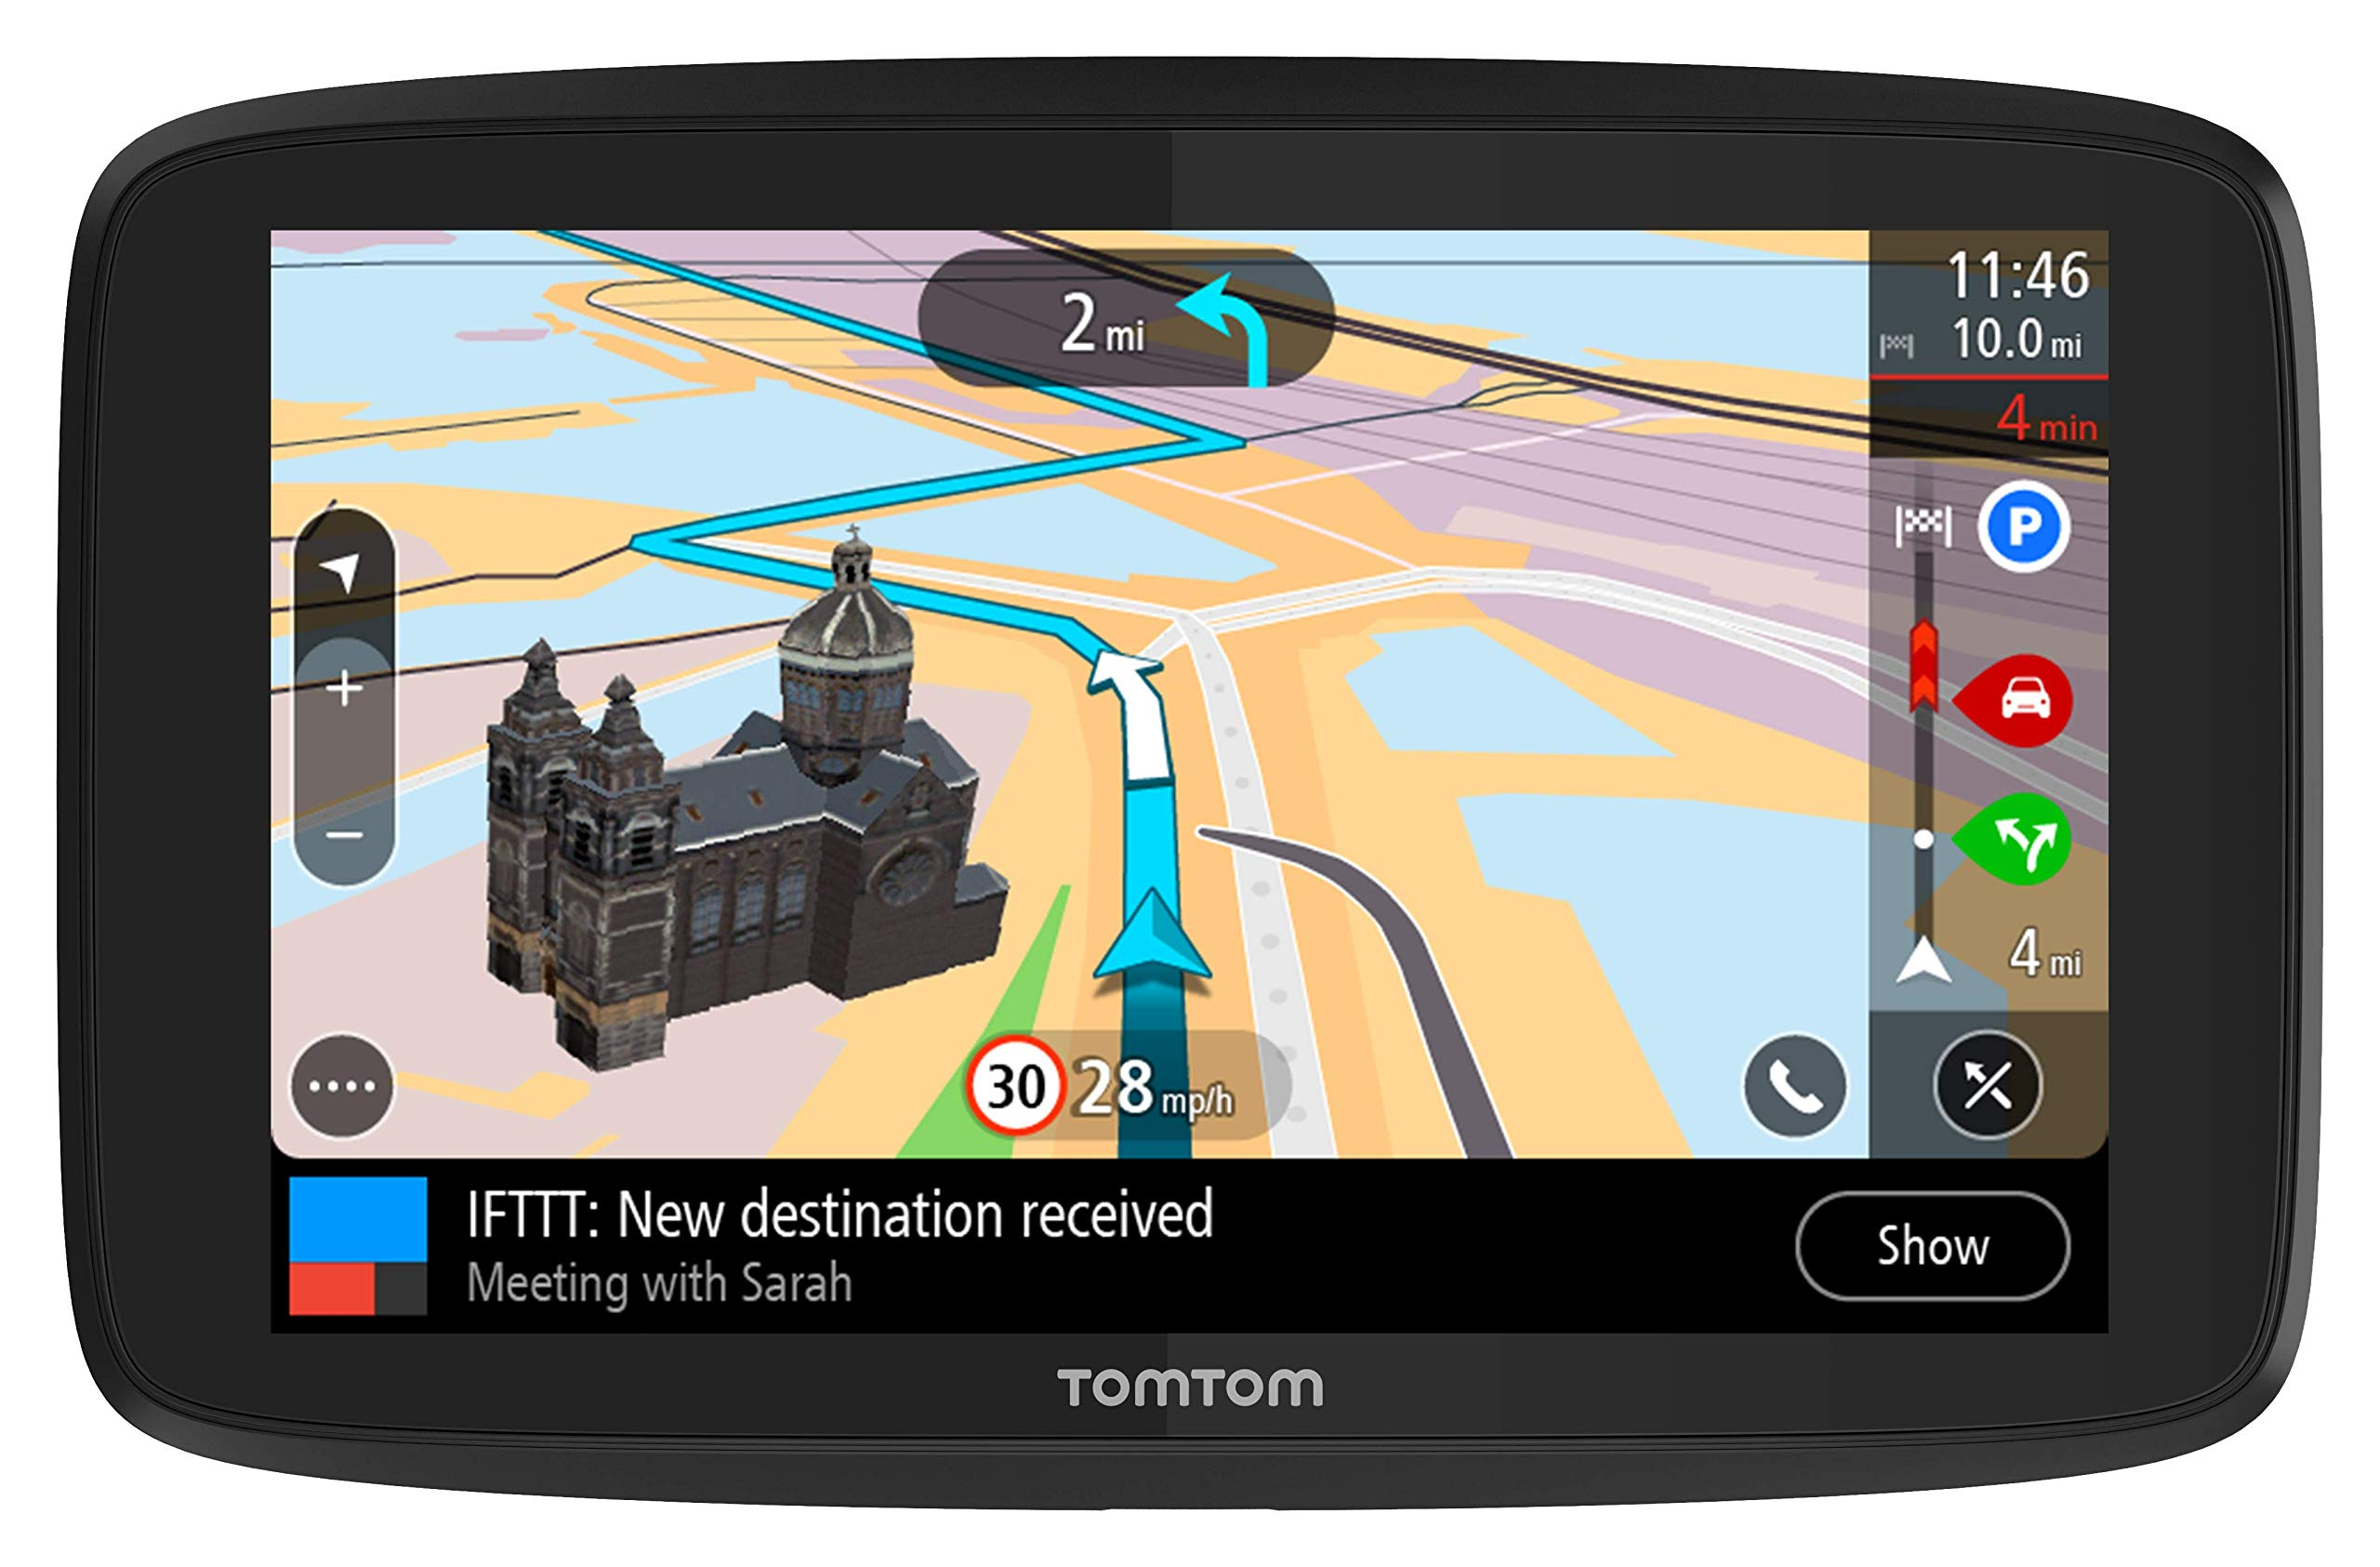 Navigation TomTom Lifetime Us Can Mex Directions